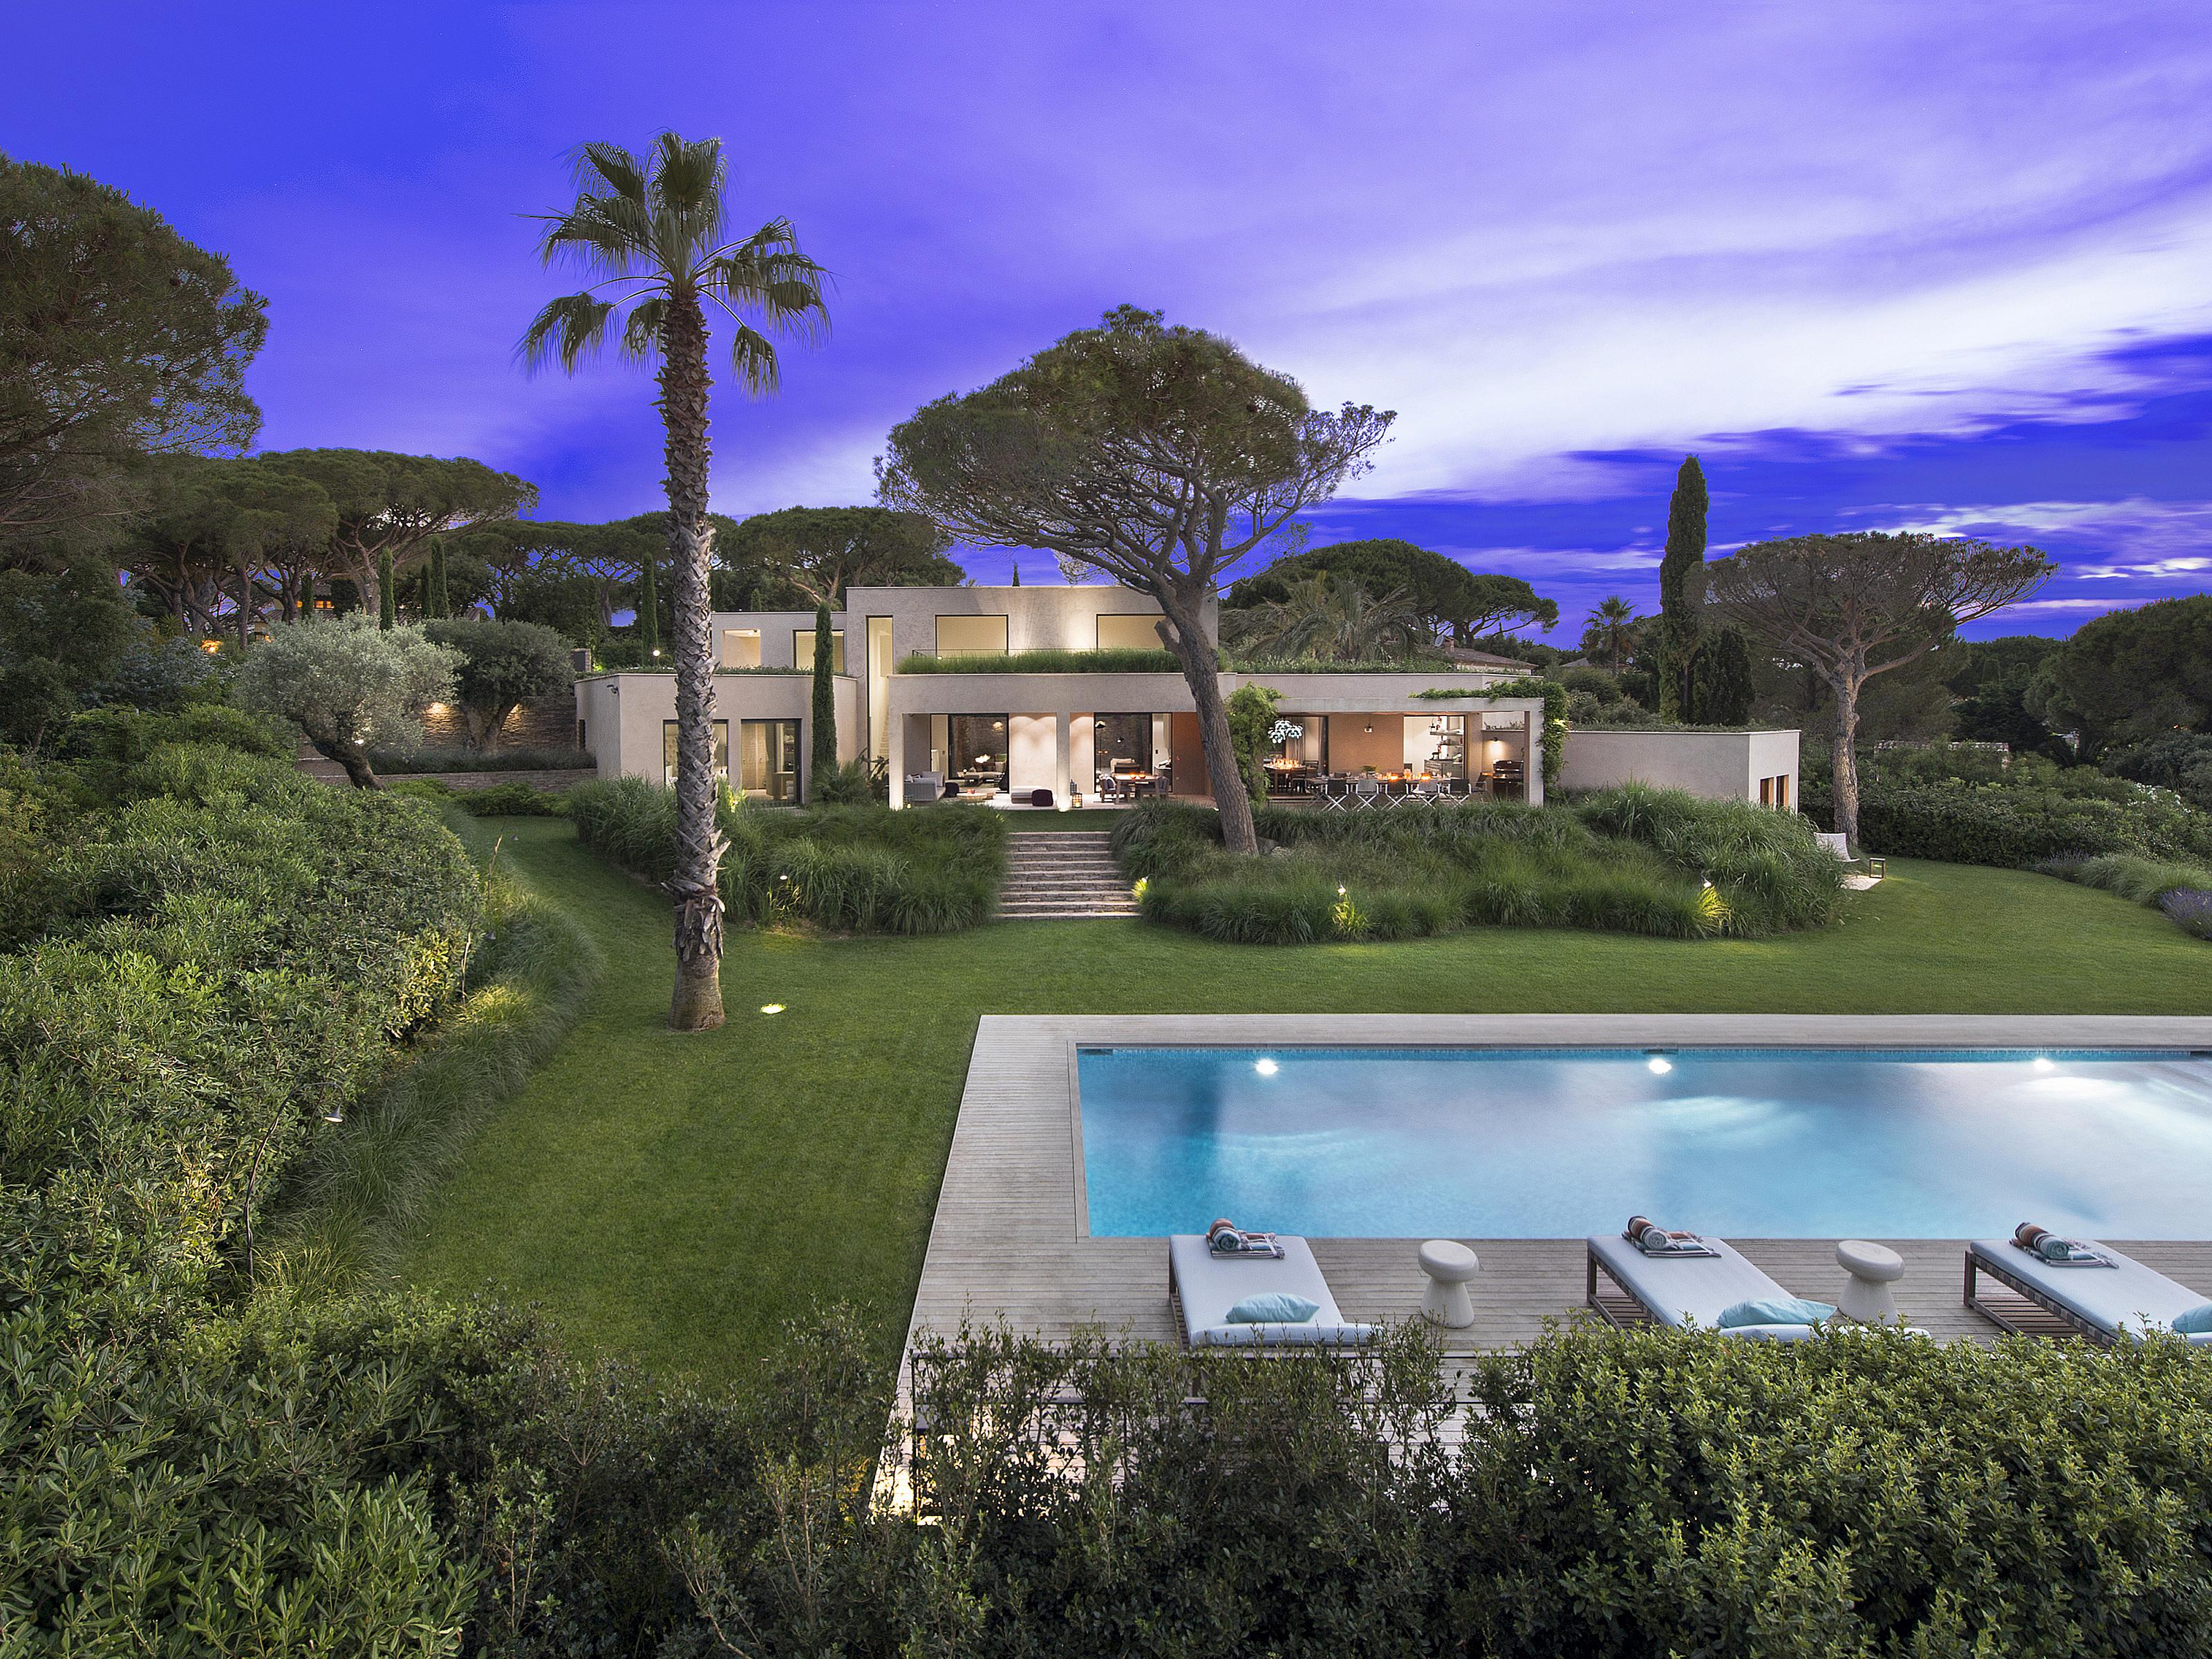 Single Family Home for Sale at Sleek and minimalist property located in a private domain saint tropez Saint Tropez, Provence-Alpes-Cote D'Azur 83990 France